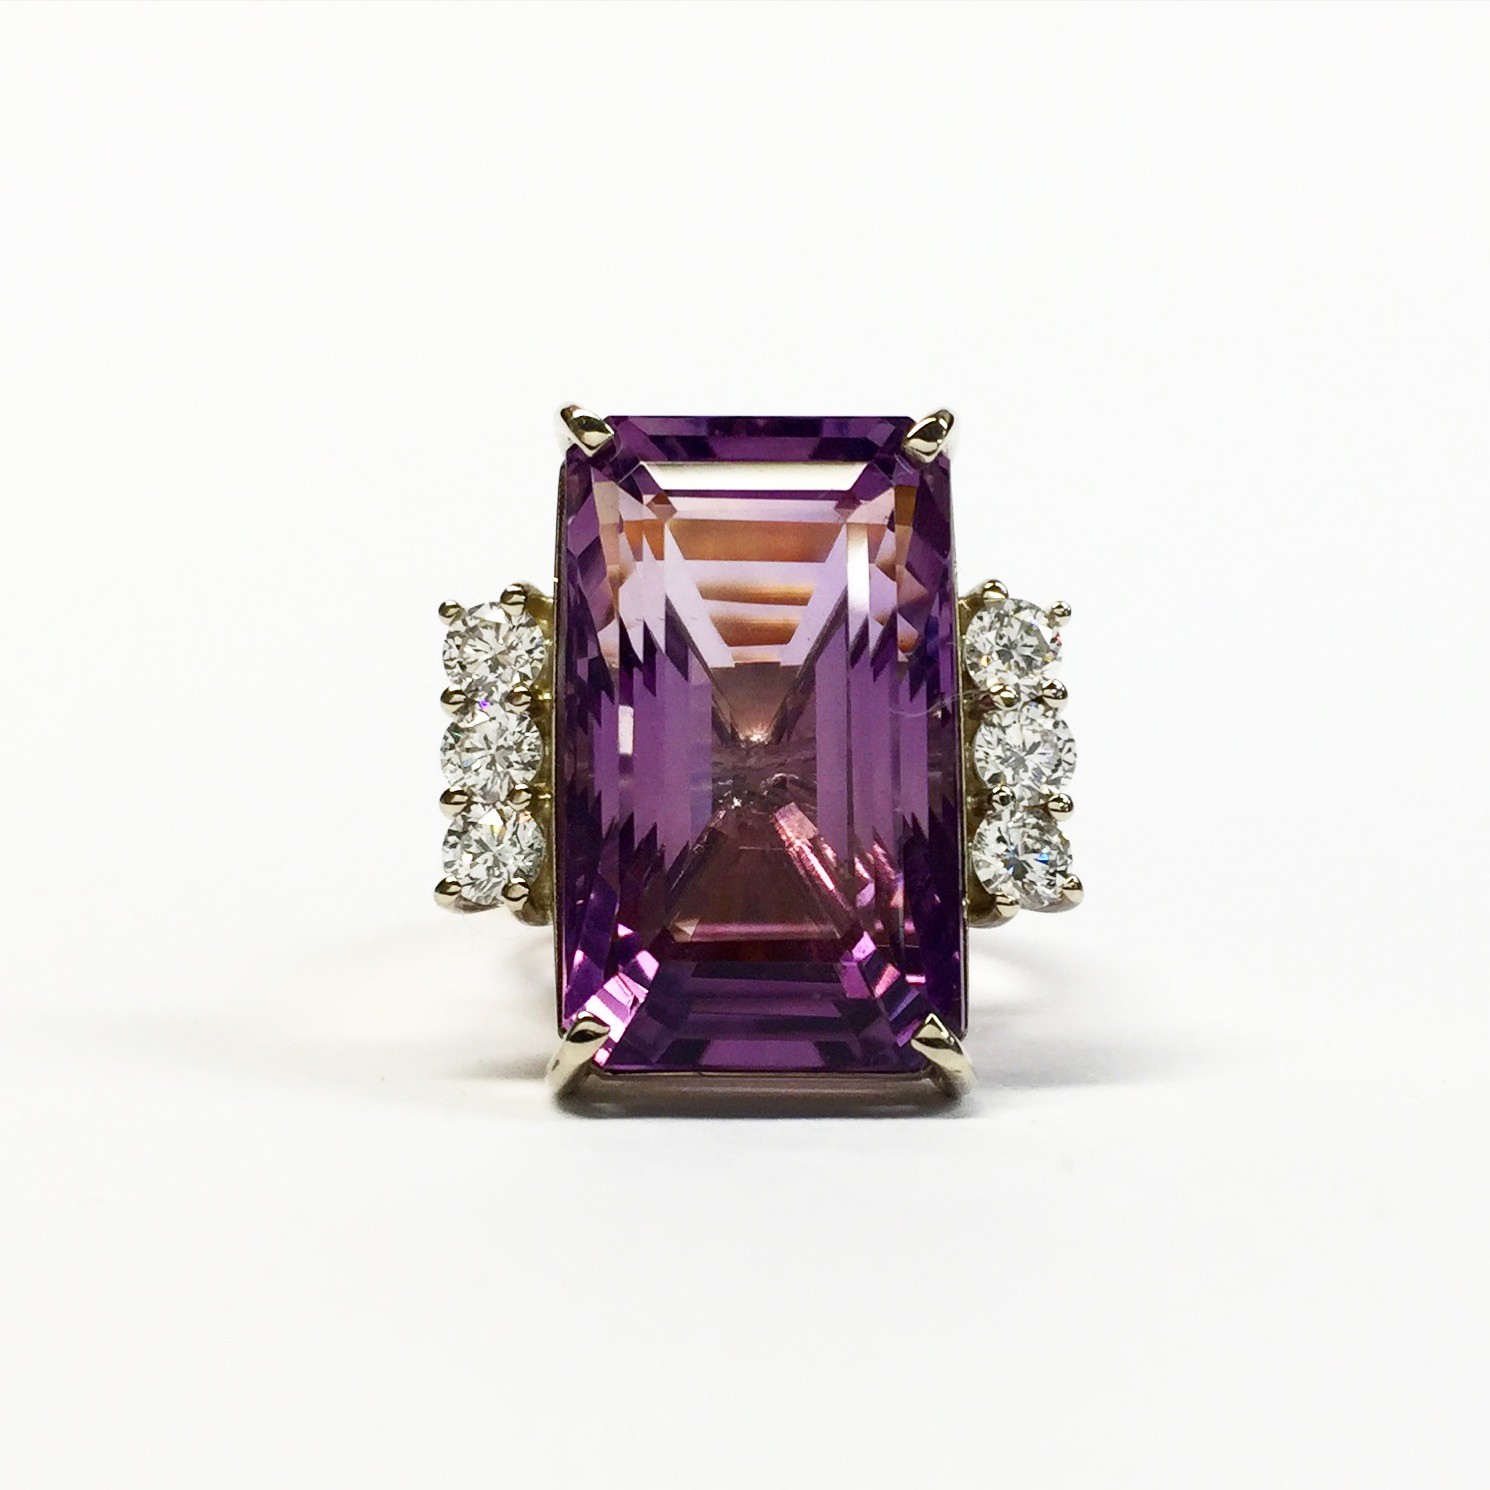 Handmade cocktail ring in yellow and white gold set with a large emerald-cut amethyst and diamonds.